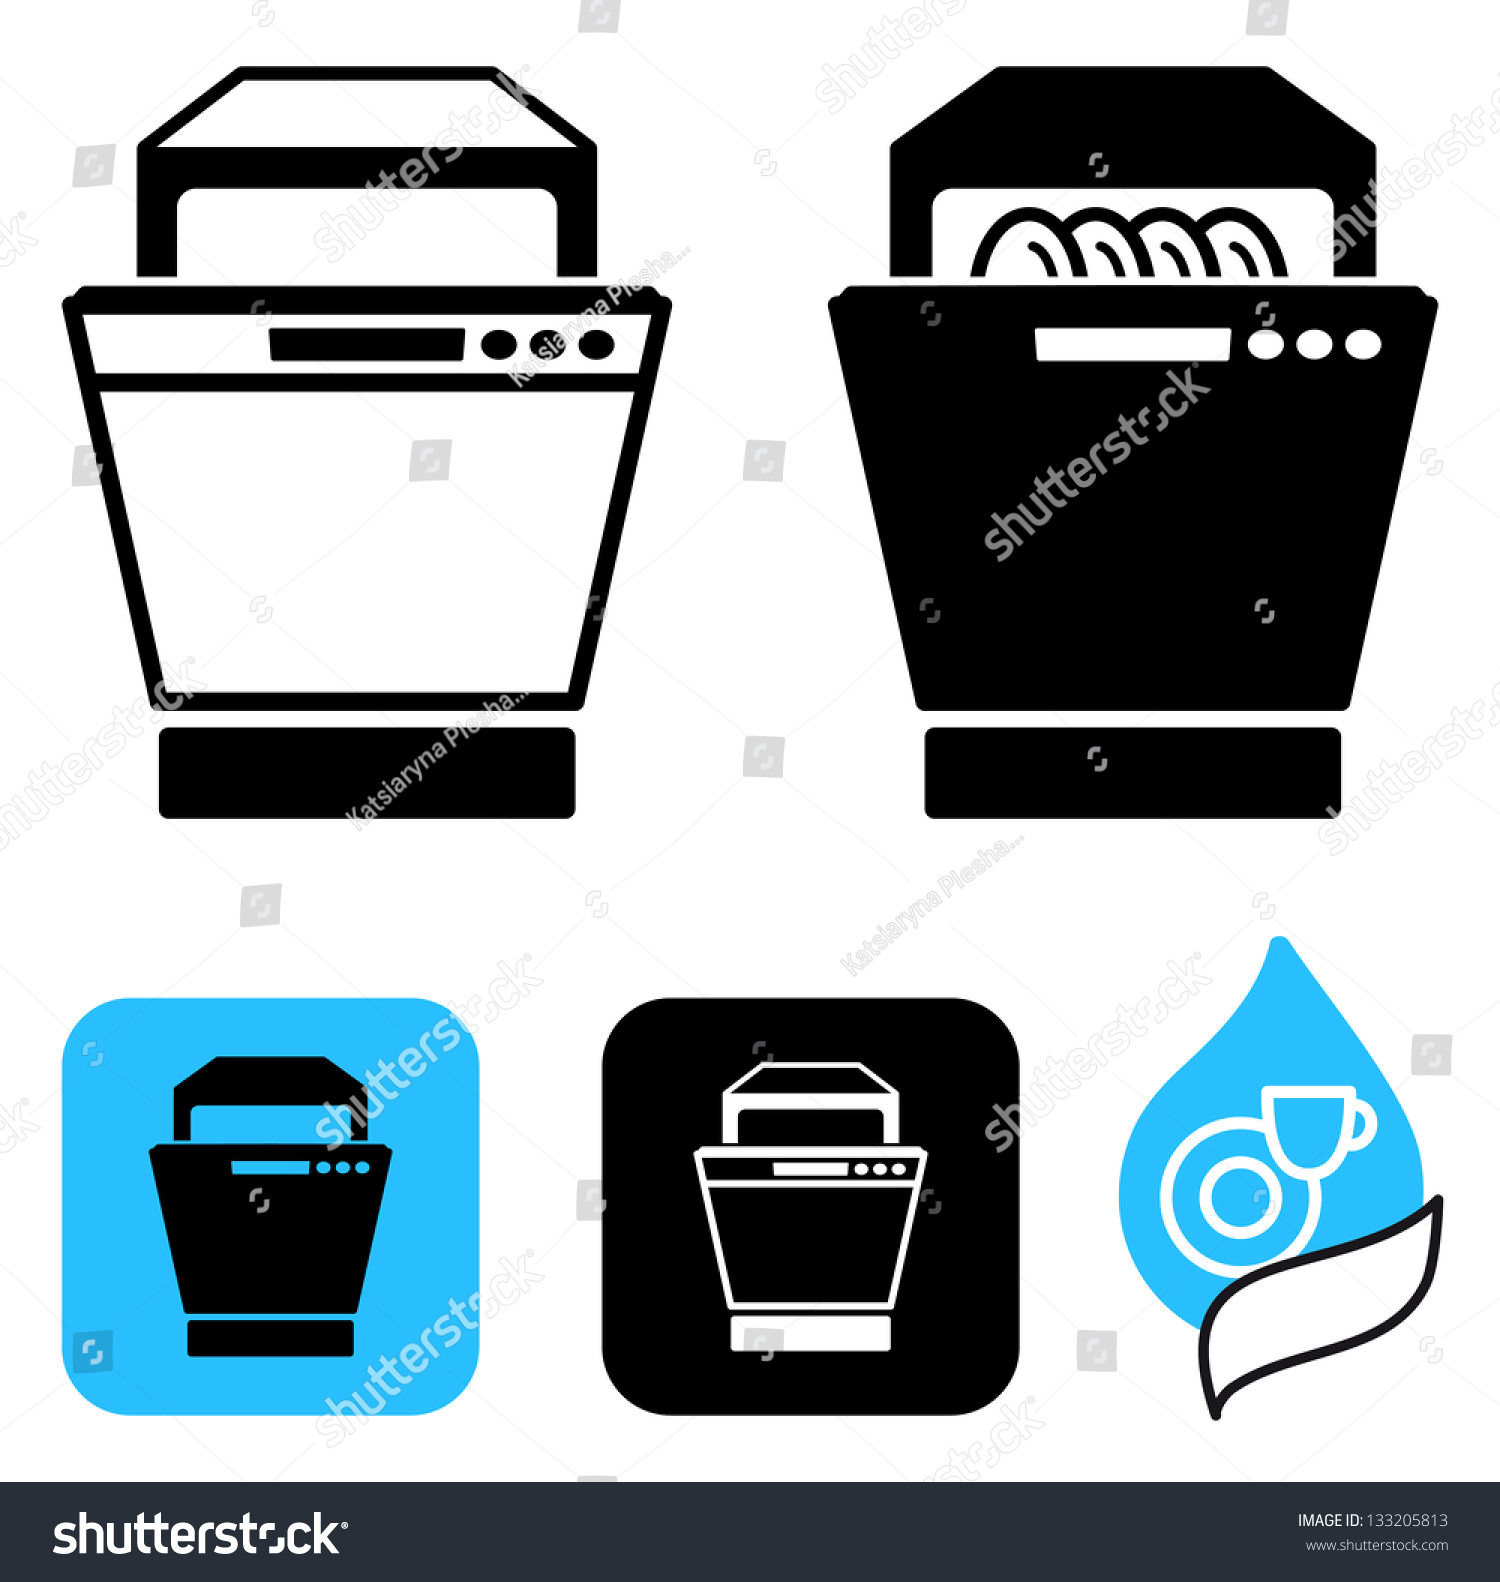 Dishwasher Clip Art ~ Simple icons dishwasher stock vector shutterstock